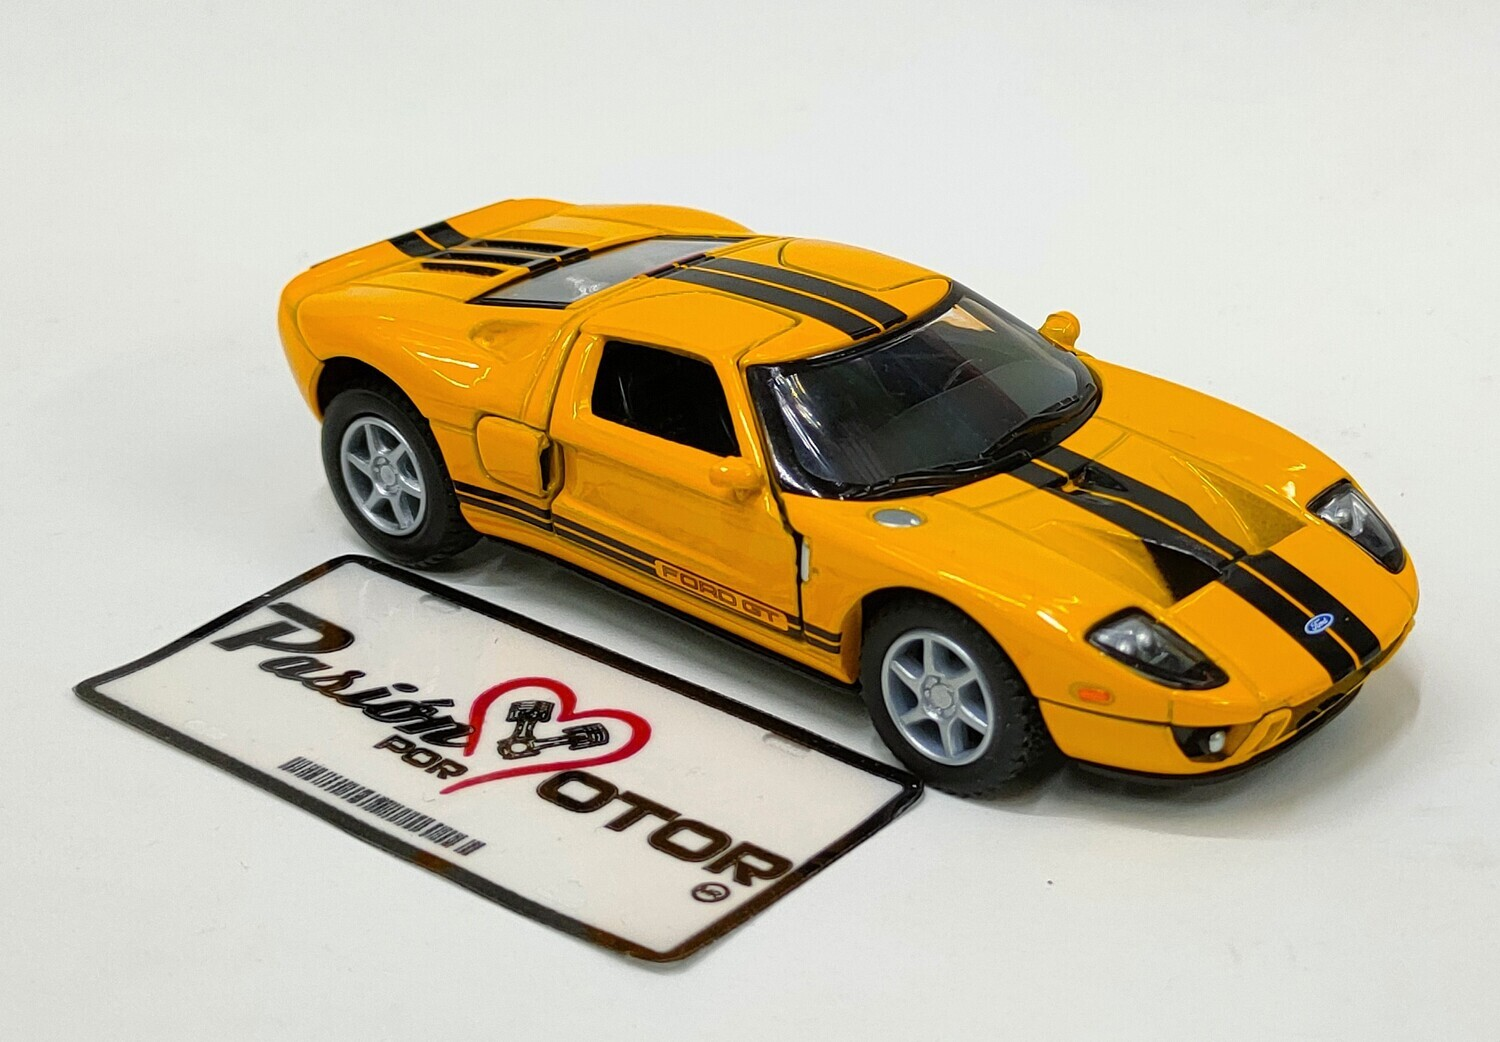 Kinsmart 1:36 Ford GT Coupe 2006 Amarillo Display a Granel 1:32